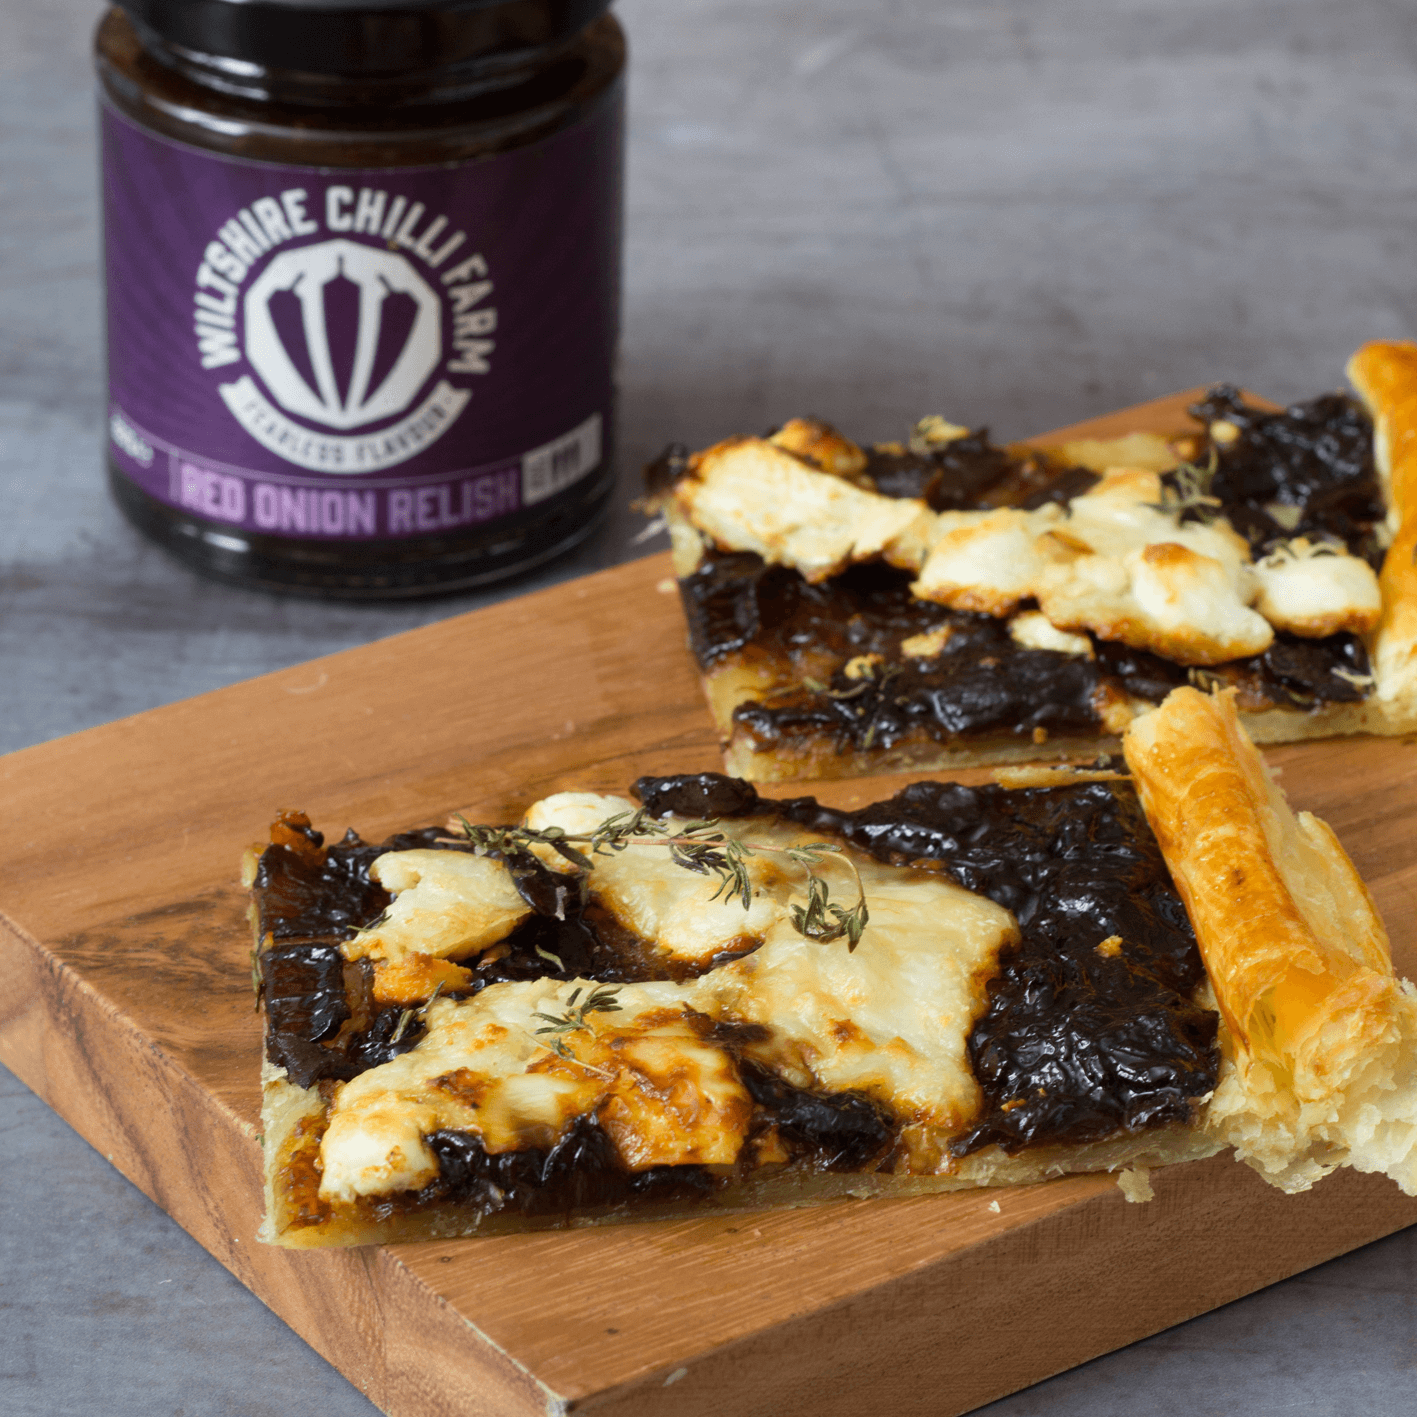 Wiltshire Chilli Farm - Goats Cheese and Red Onion Relish Tart